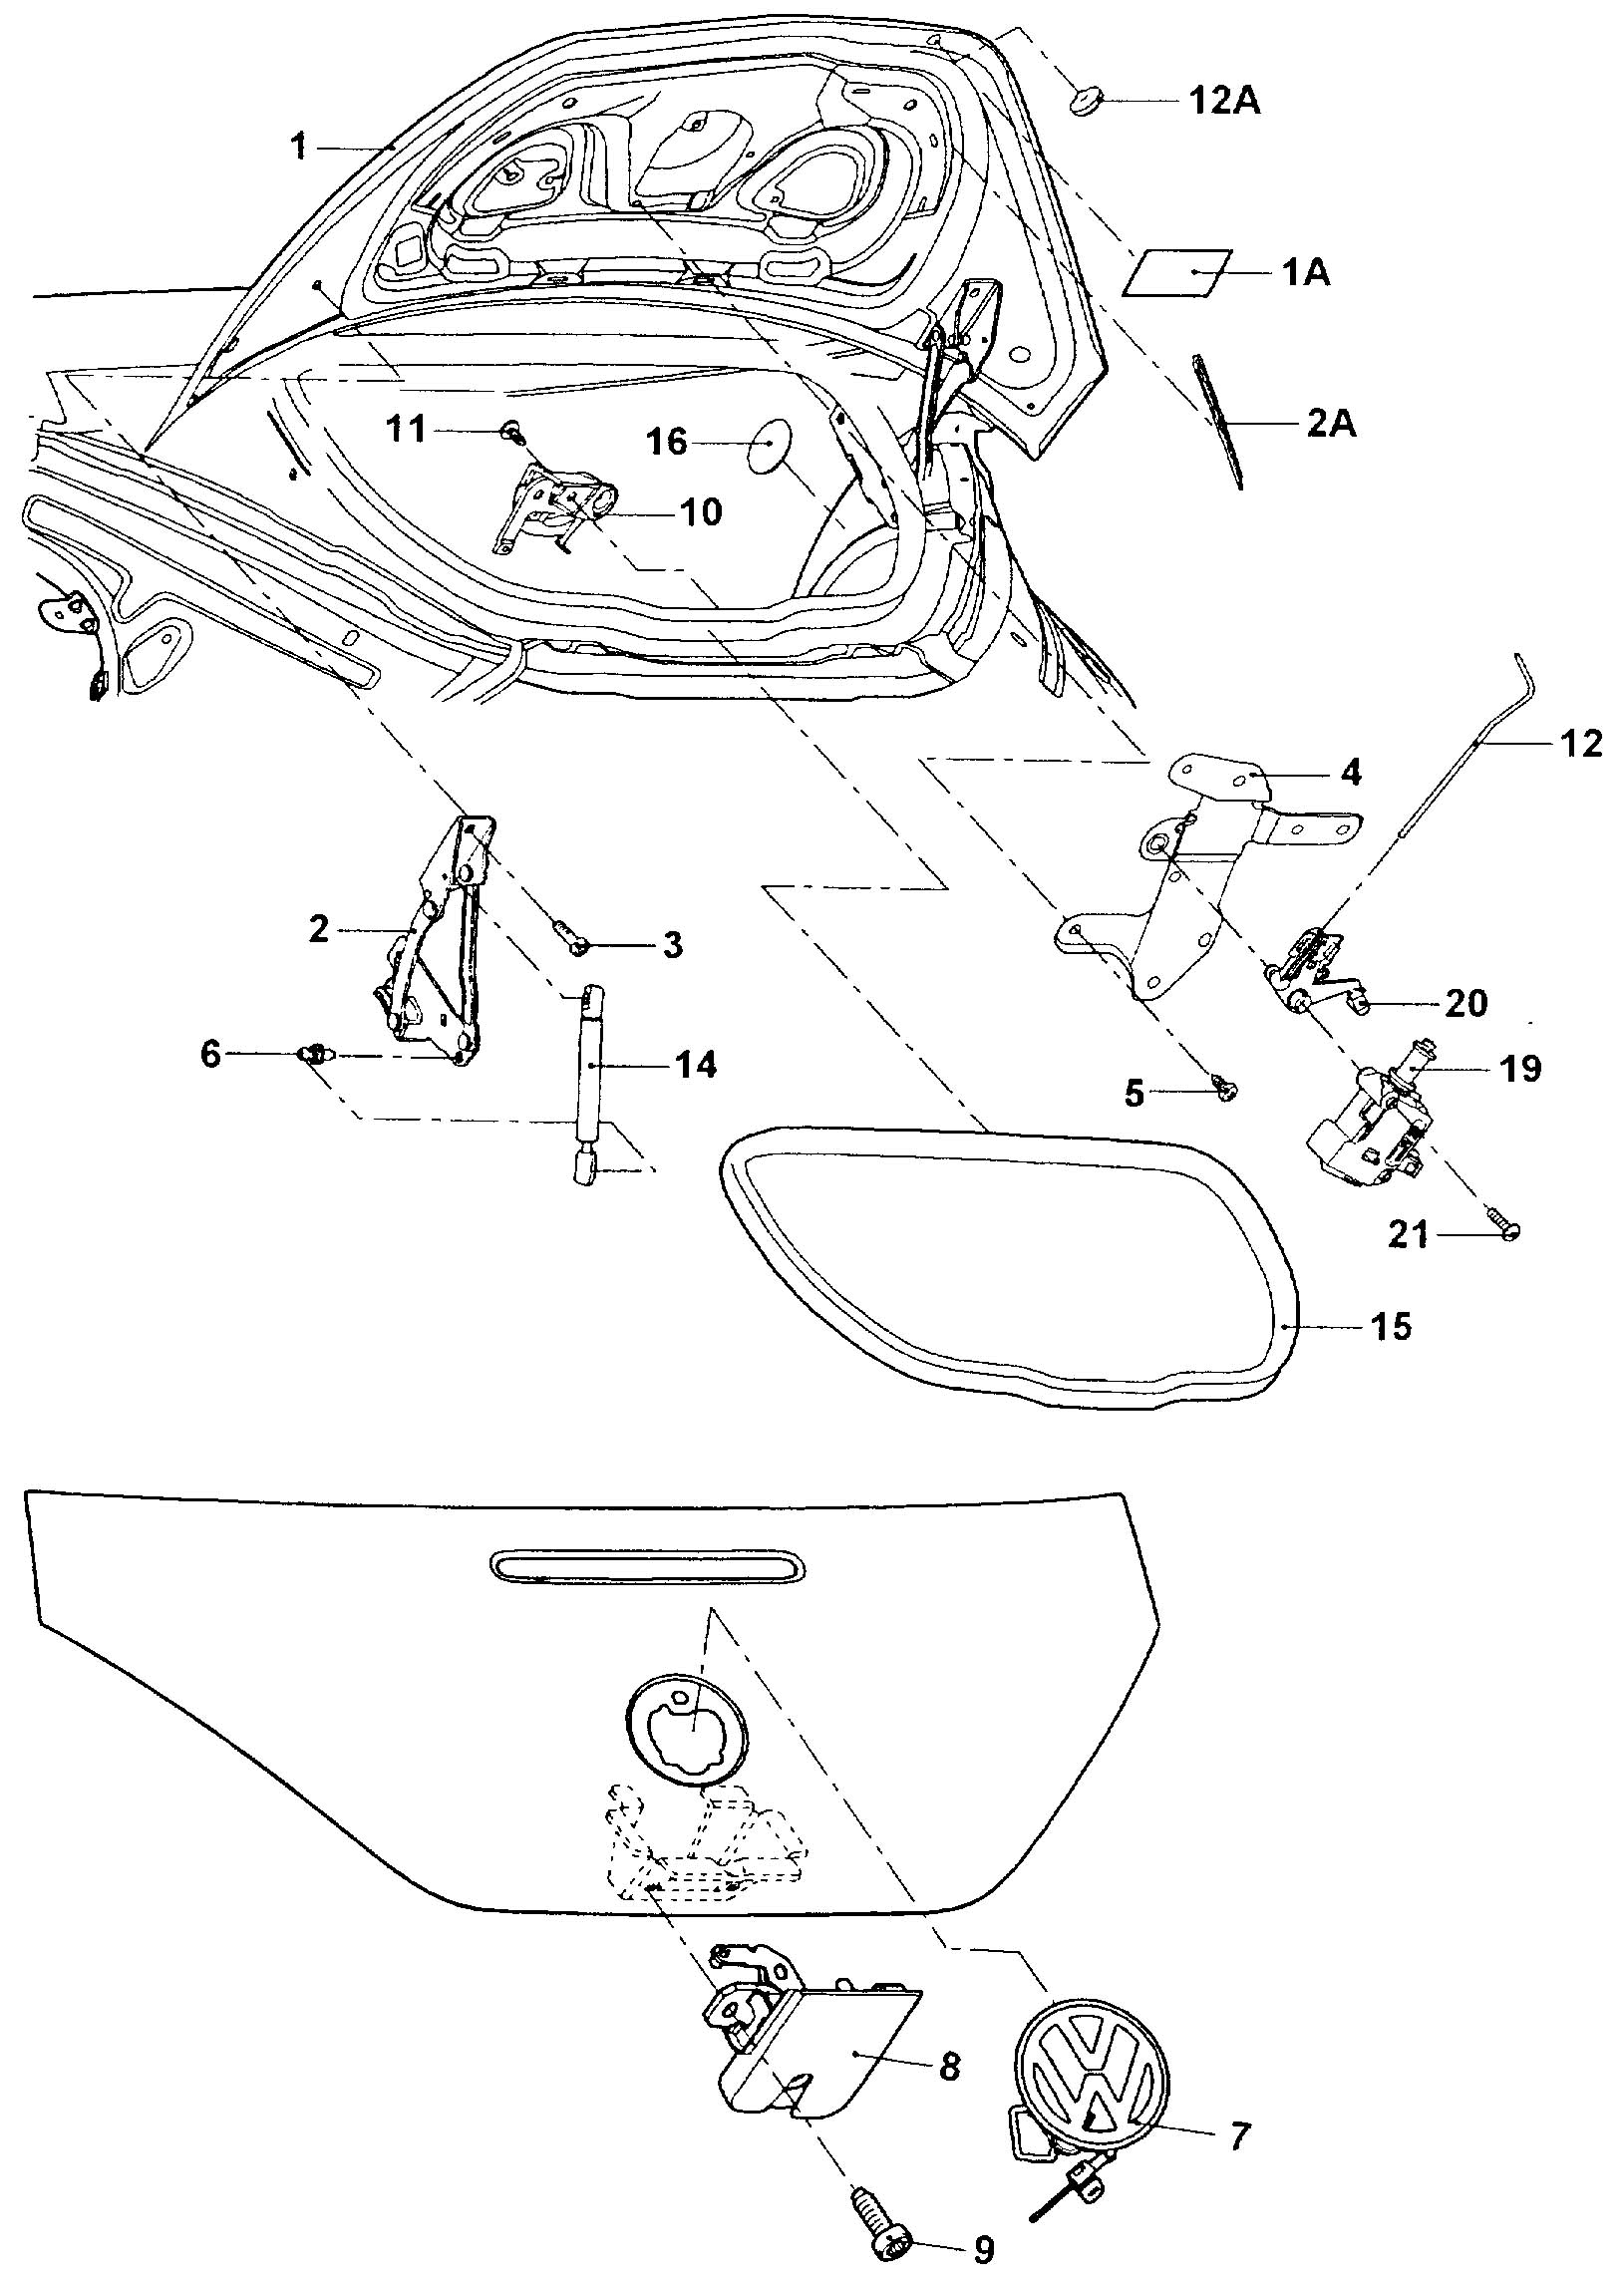 2006 polaris sportsman wiring schematic